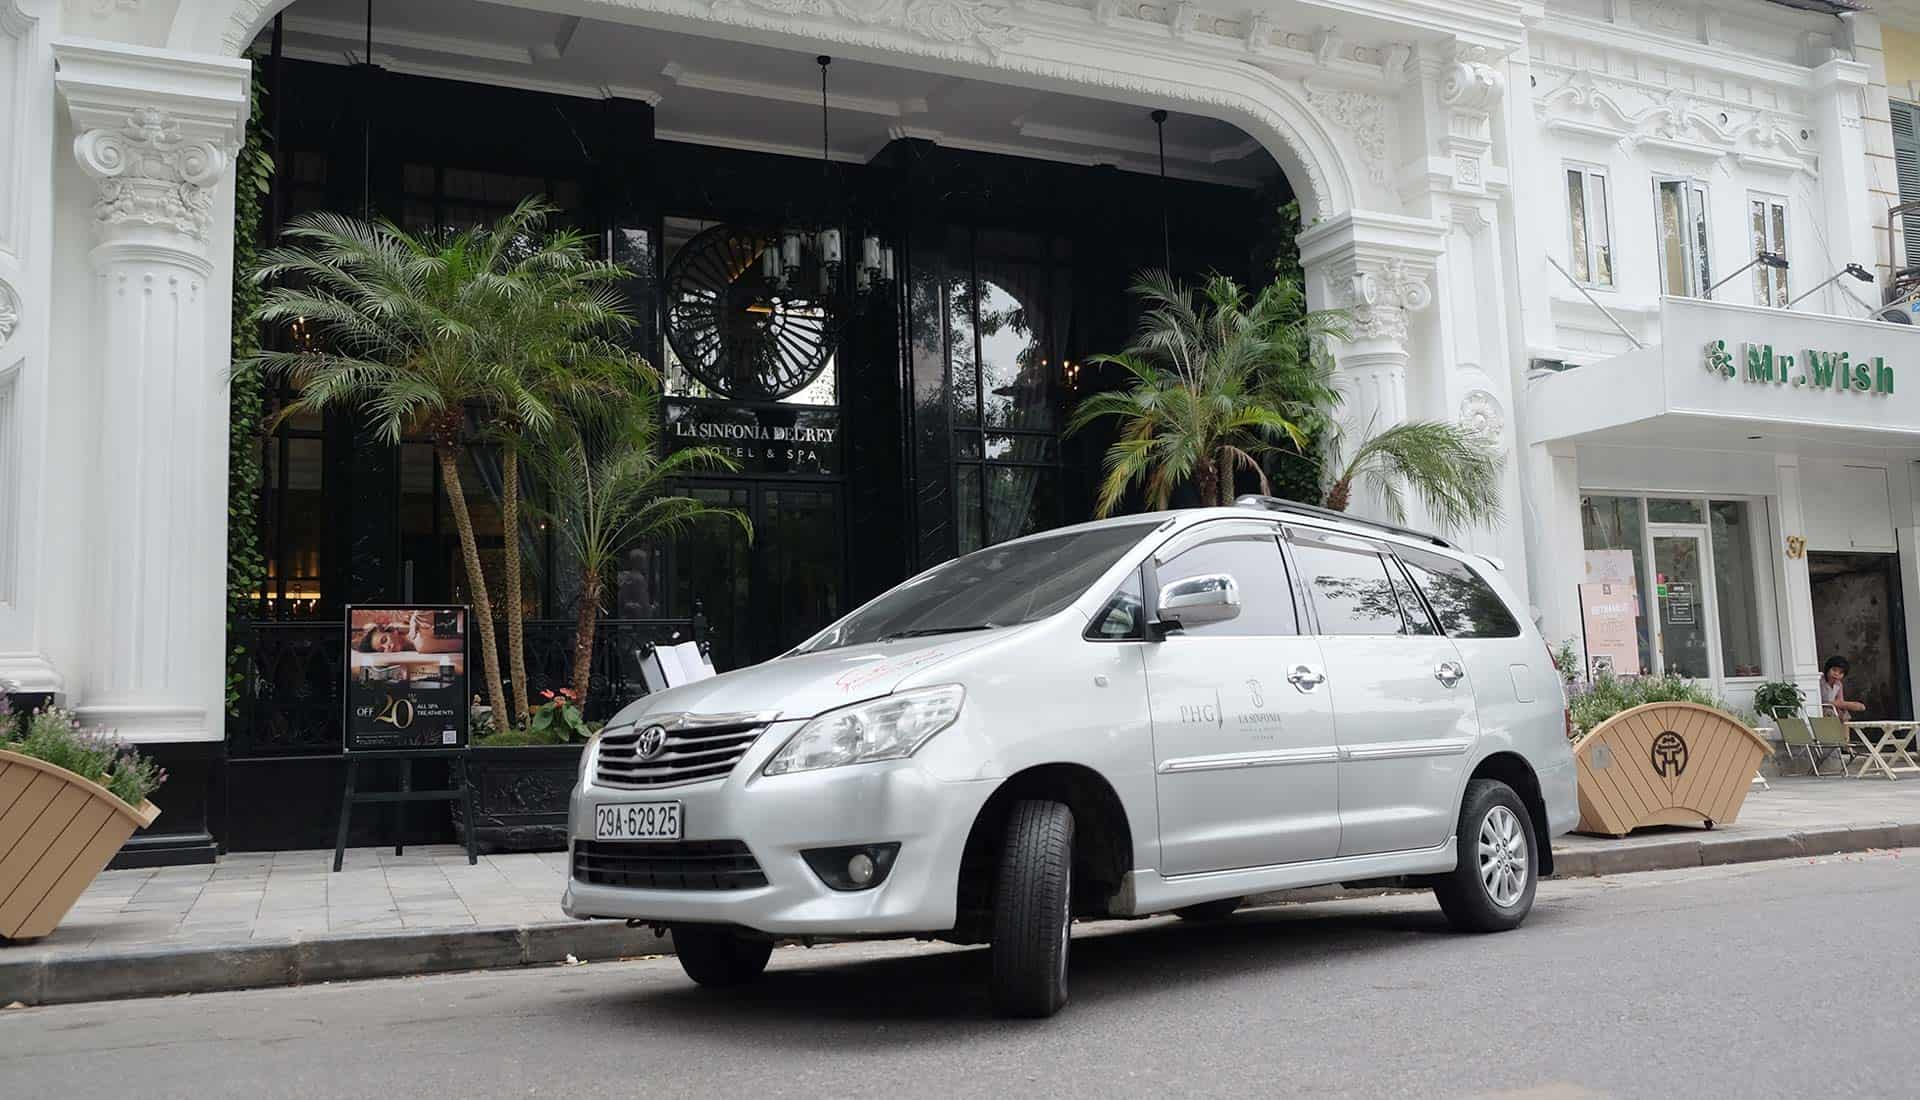 Travel from Noi Bai Airport to Halong Bay by Private Car